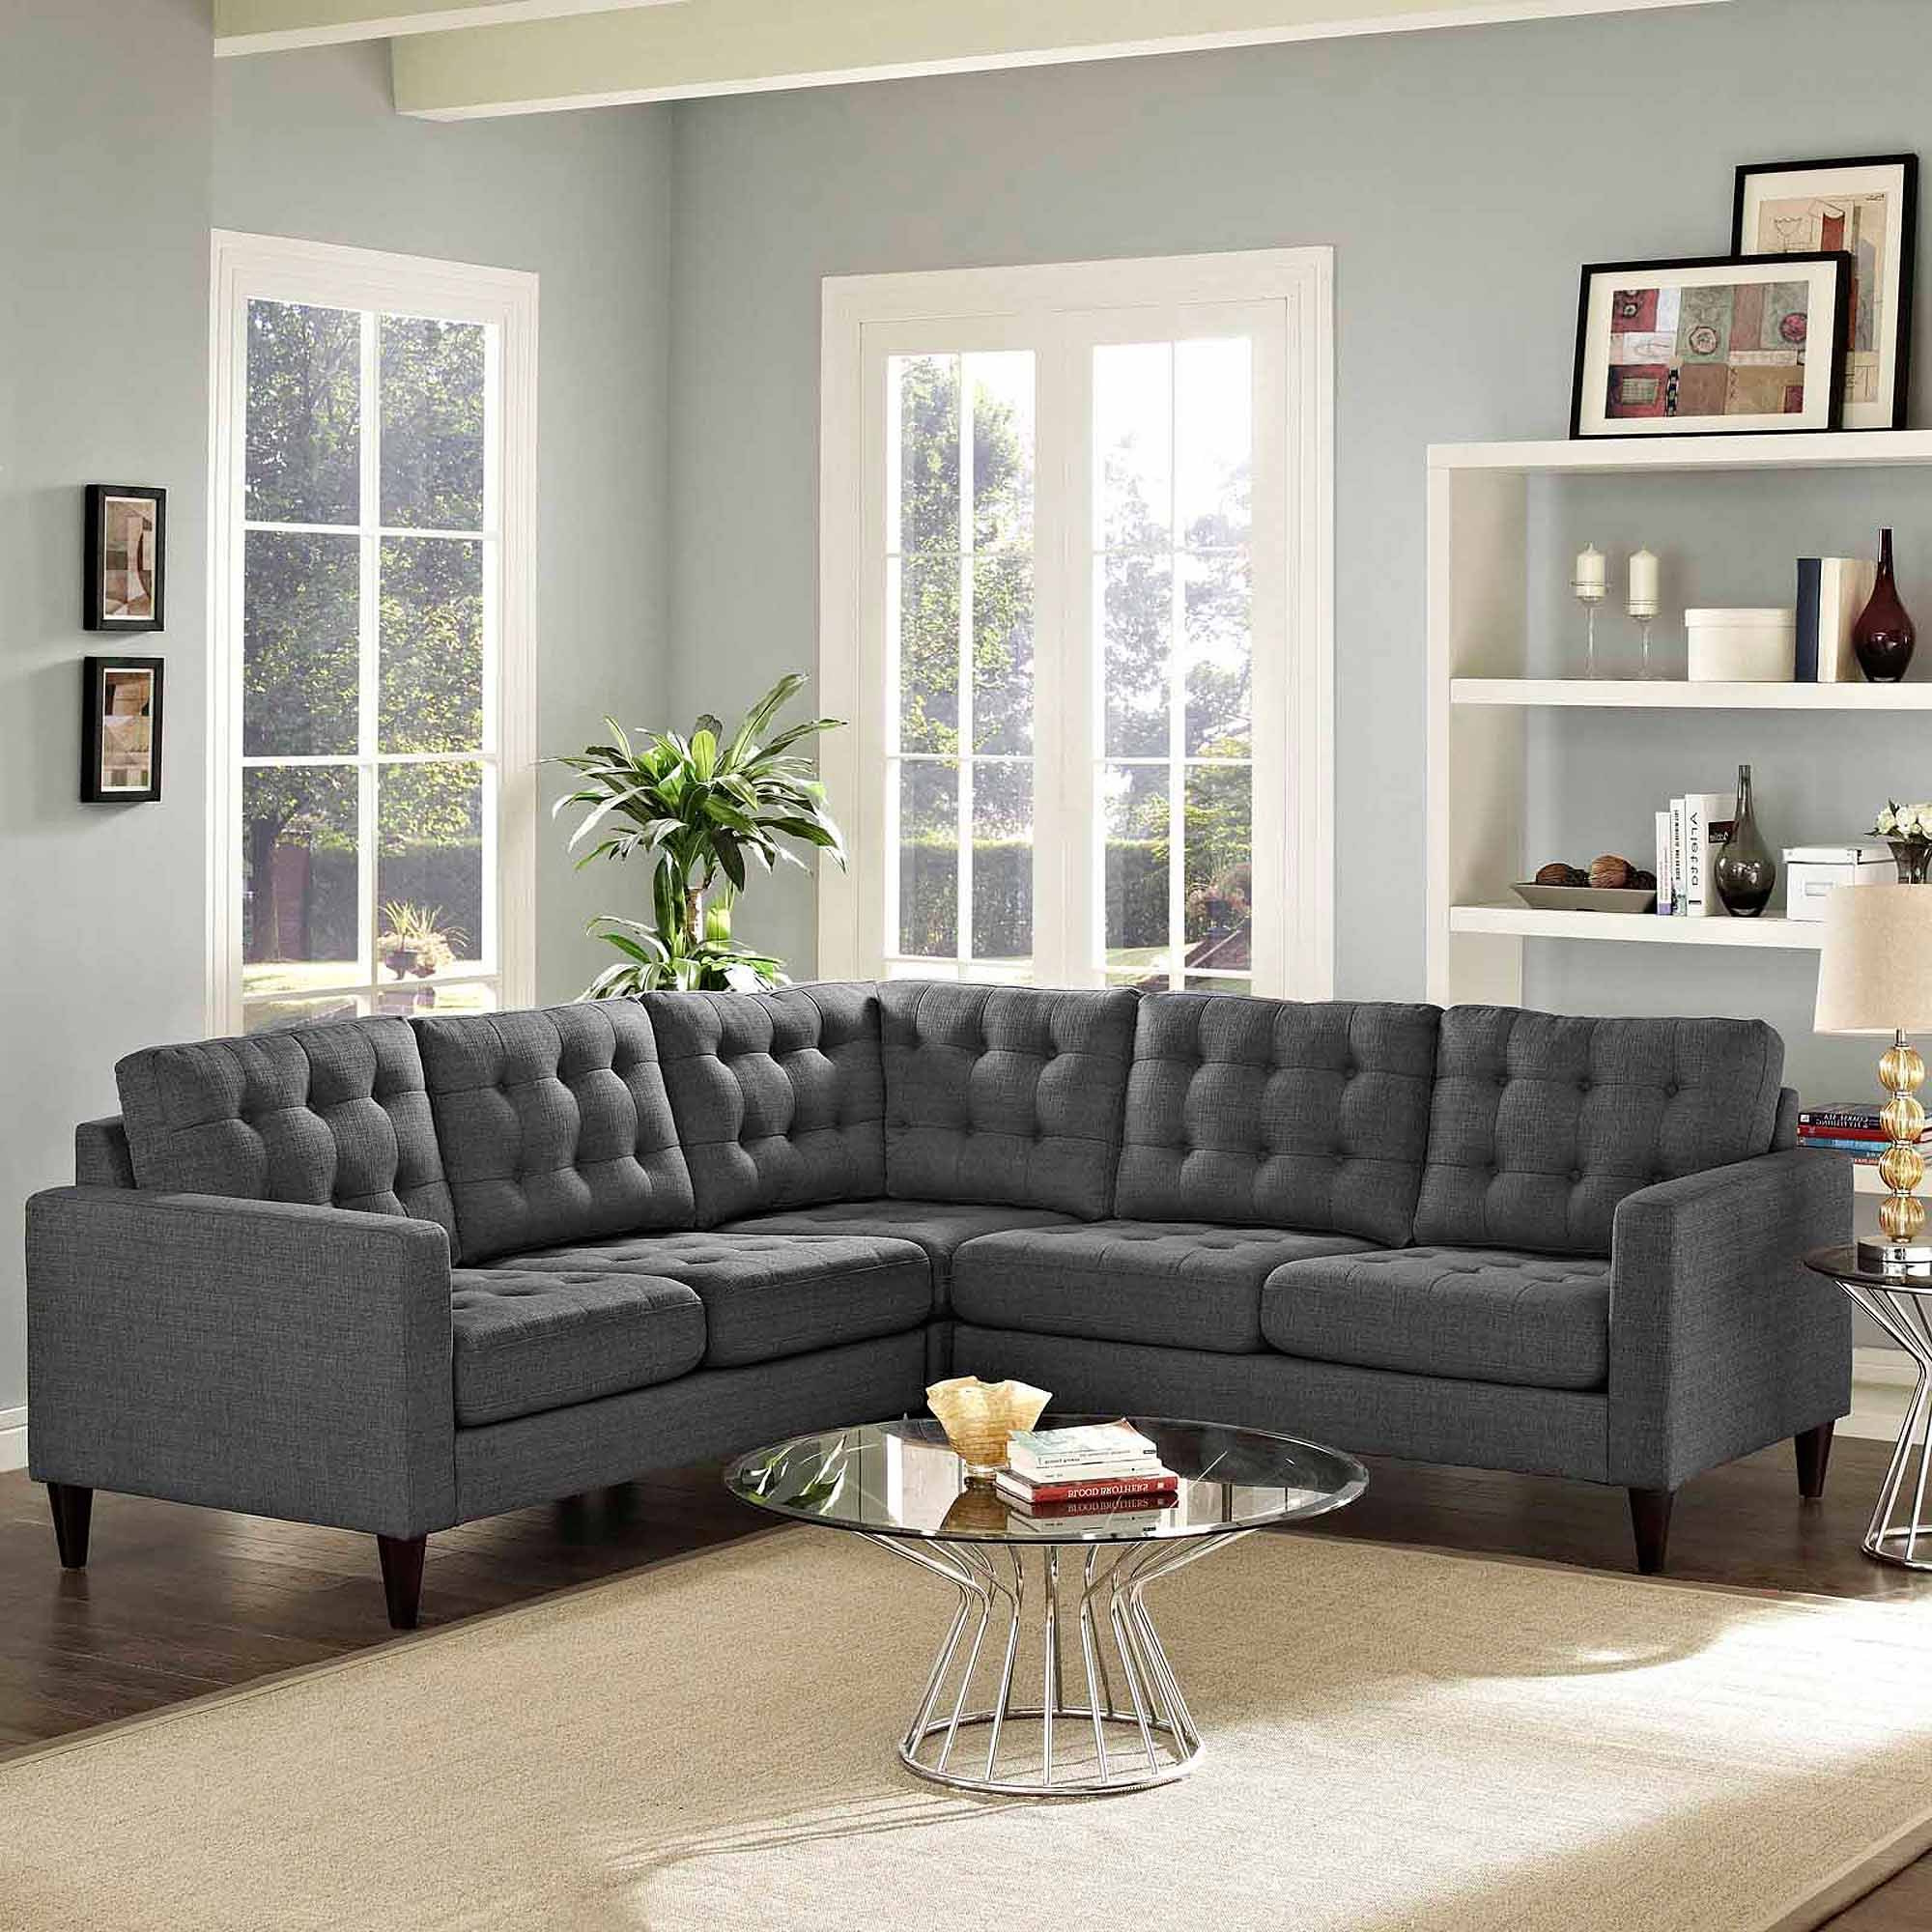 Moda 3 Piece Sectional With Chaise In Whitley 3 Piece Sectionals By Nate Berkus And Jeremiah Brent (View 2 of 20)